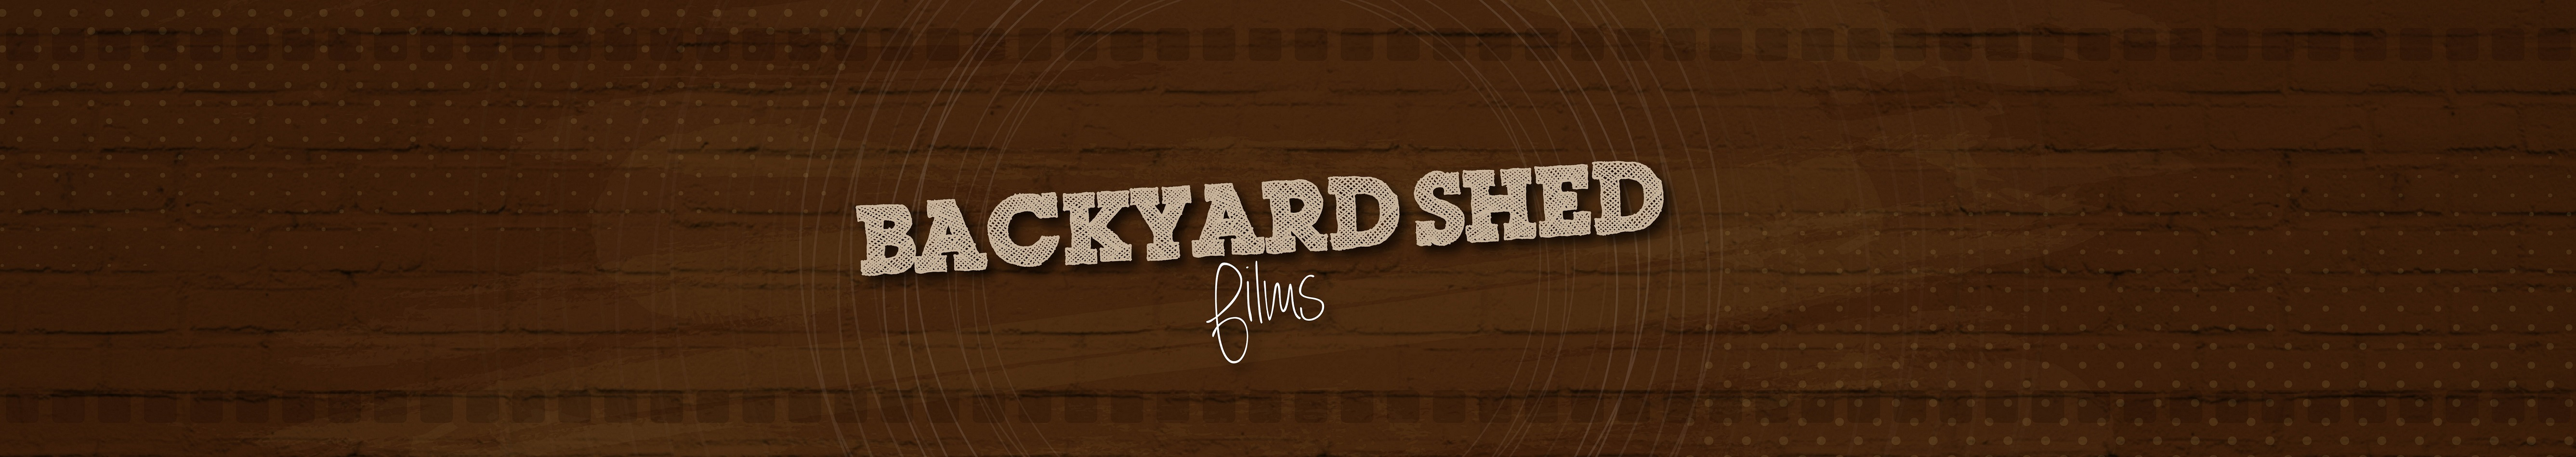 Music Videos | Backyard Shed Films